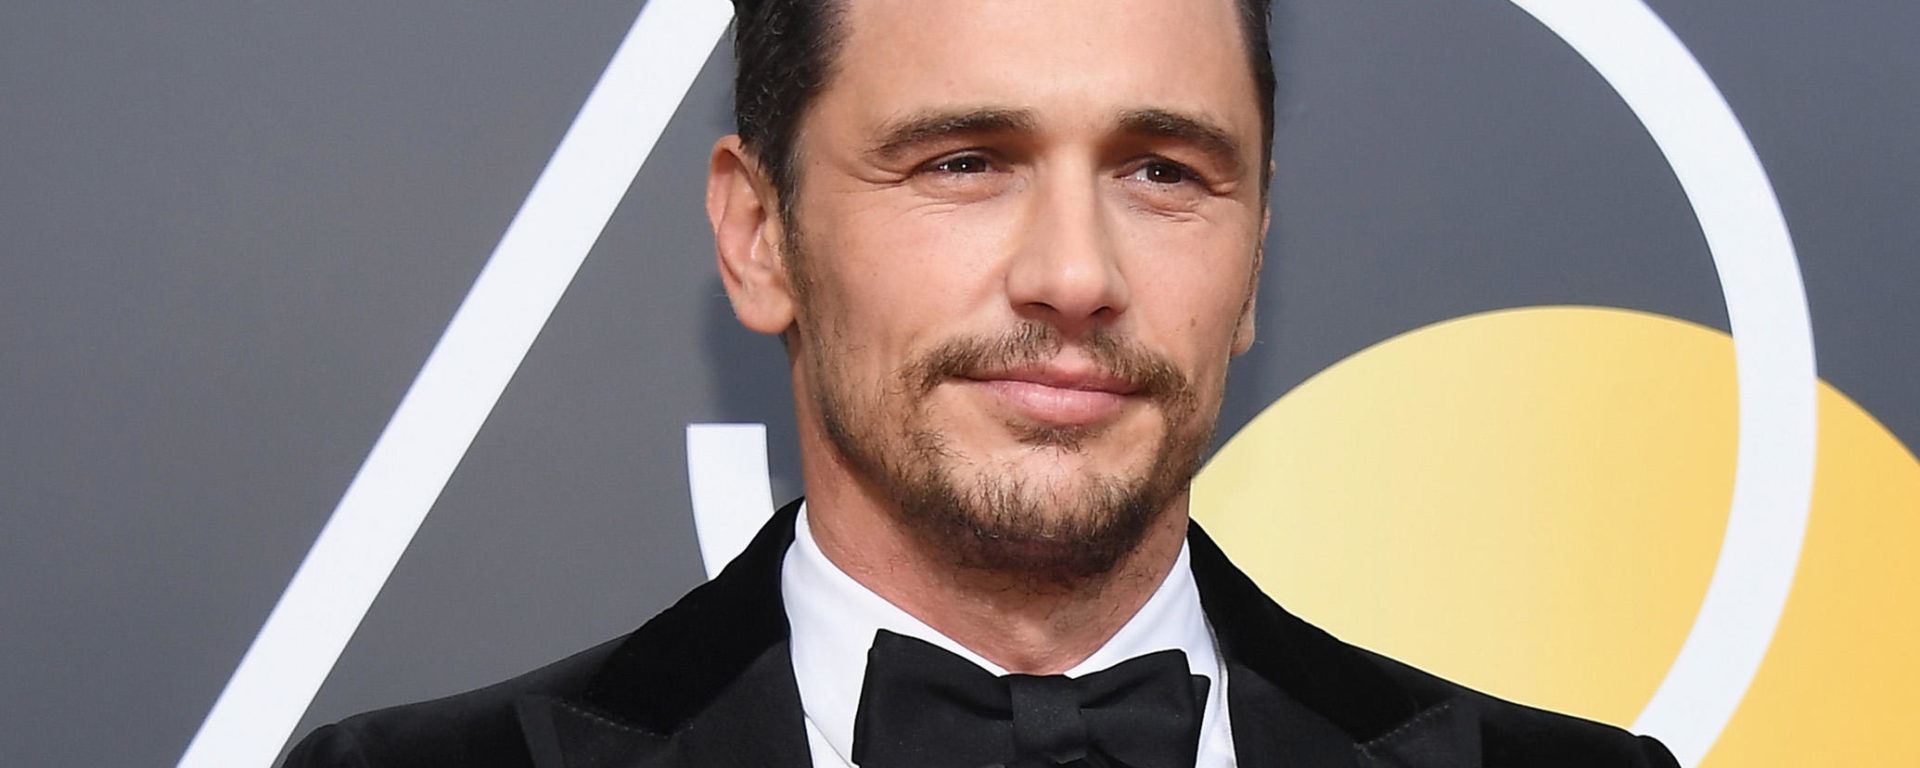 james-franco-news-cultural-hater